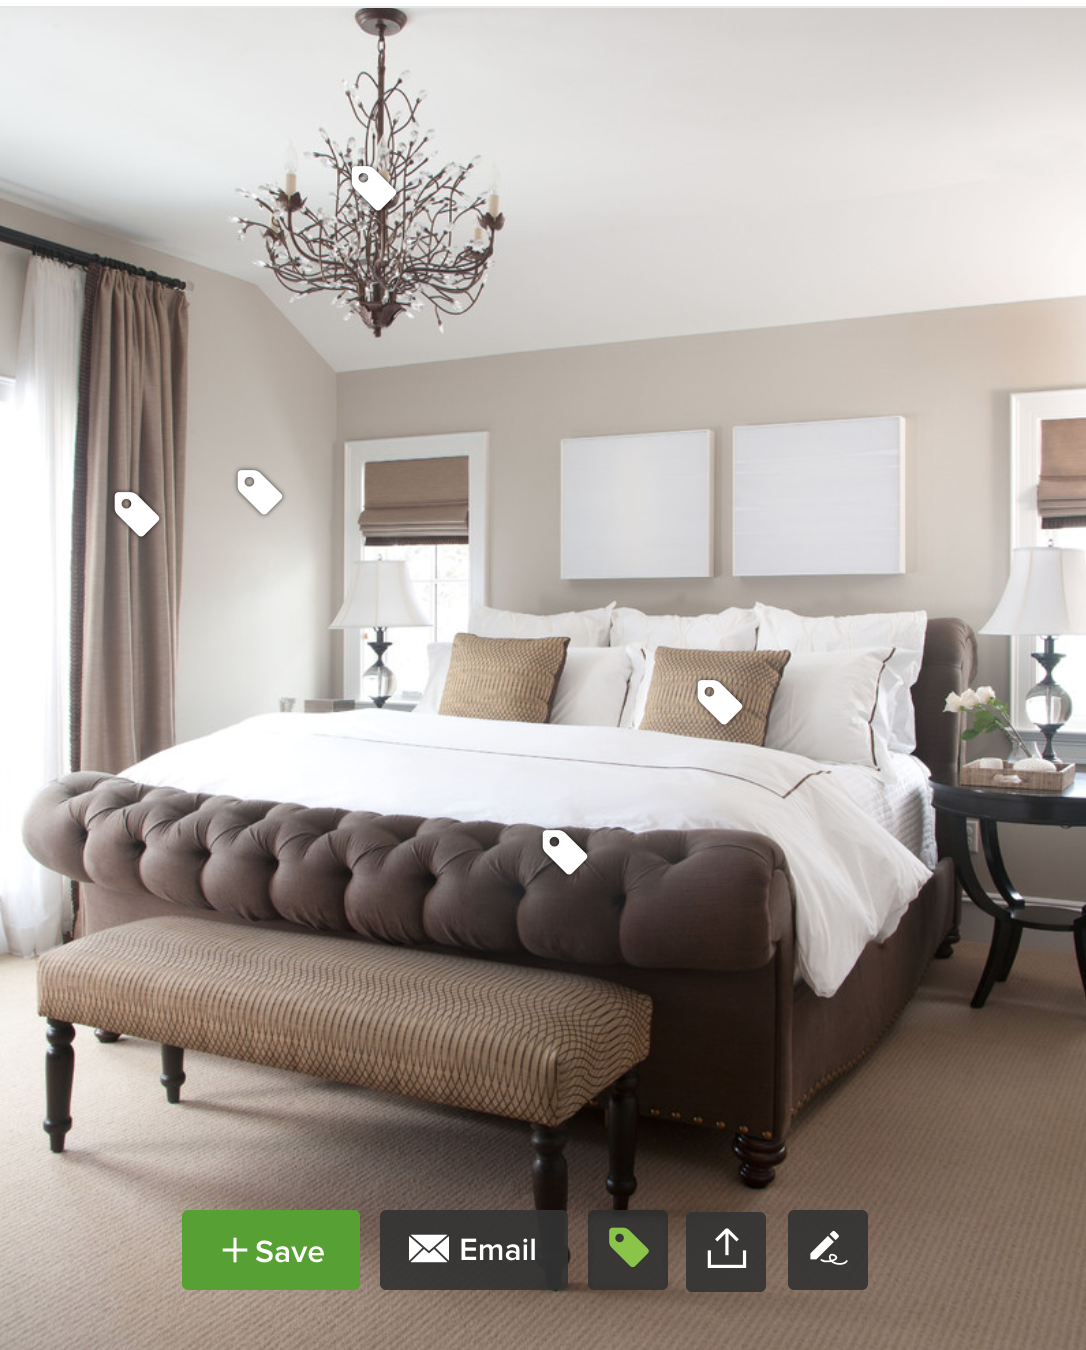 25 Stunning Transitional Bedroom Design Ideas: Pin By Stephanie On Carpet + Rugs